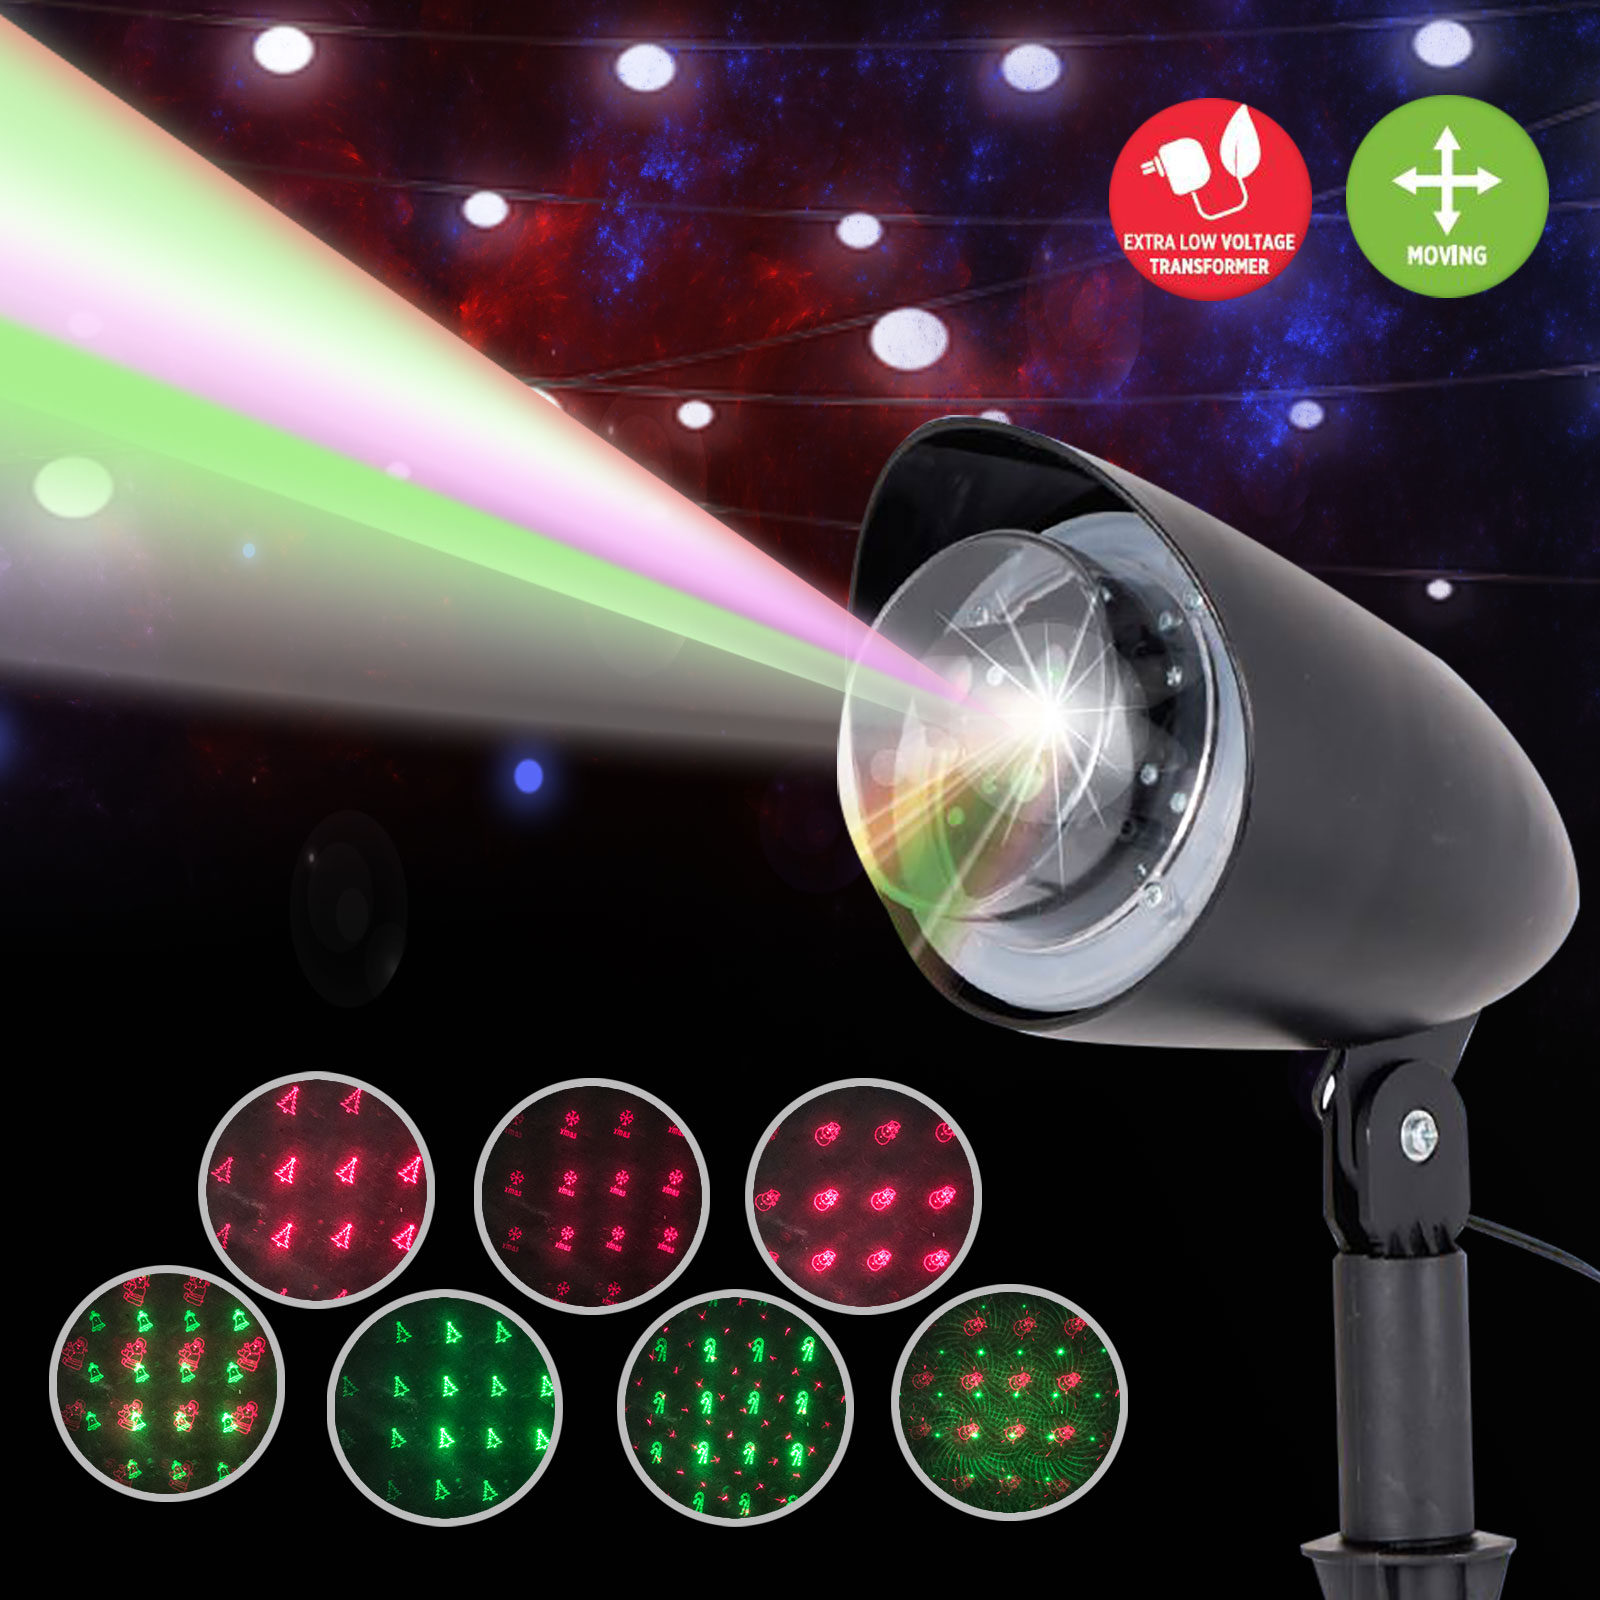 Led laser projector 6pattern outdoor christmas light xmas party image is loading led laser projector 6pattern outdoor christmas light xmas mozeypictures Gallery